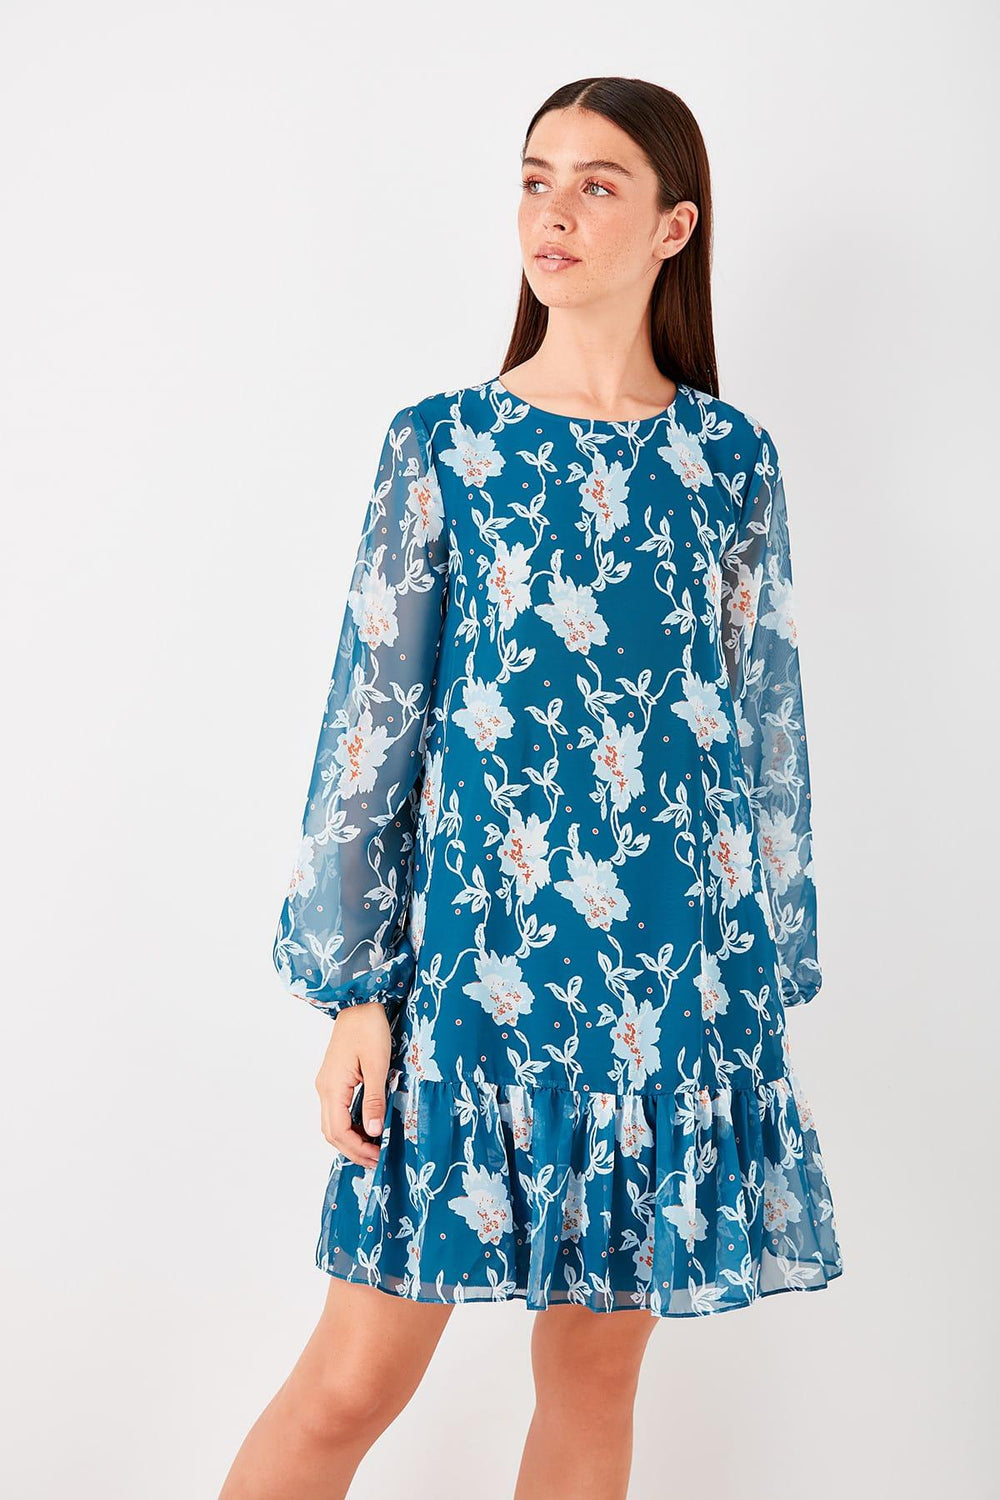 Petrol Flounces Floral Dress - Top Maxy